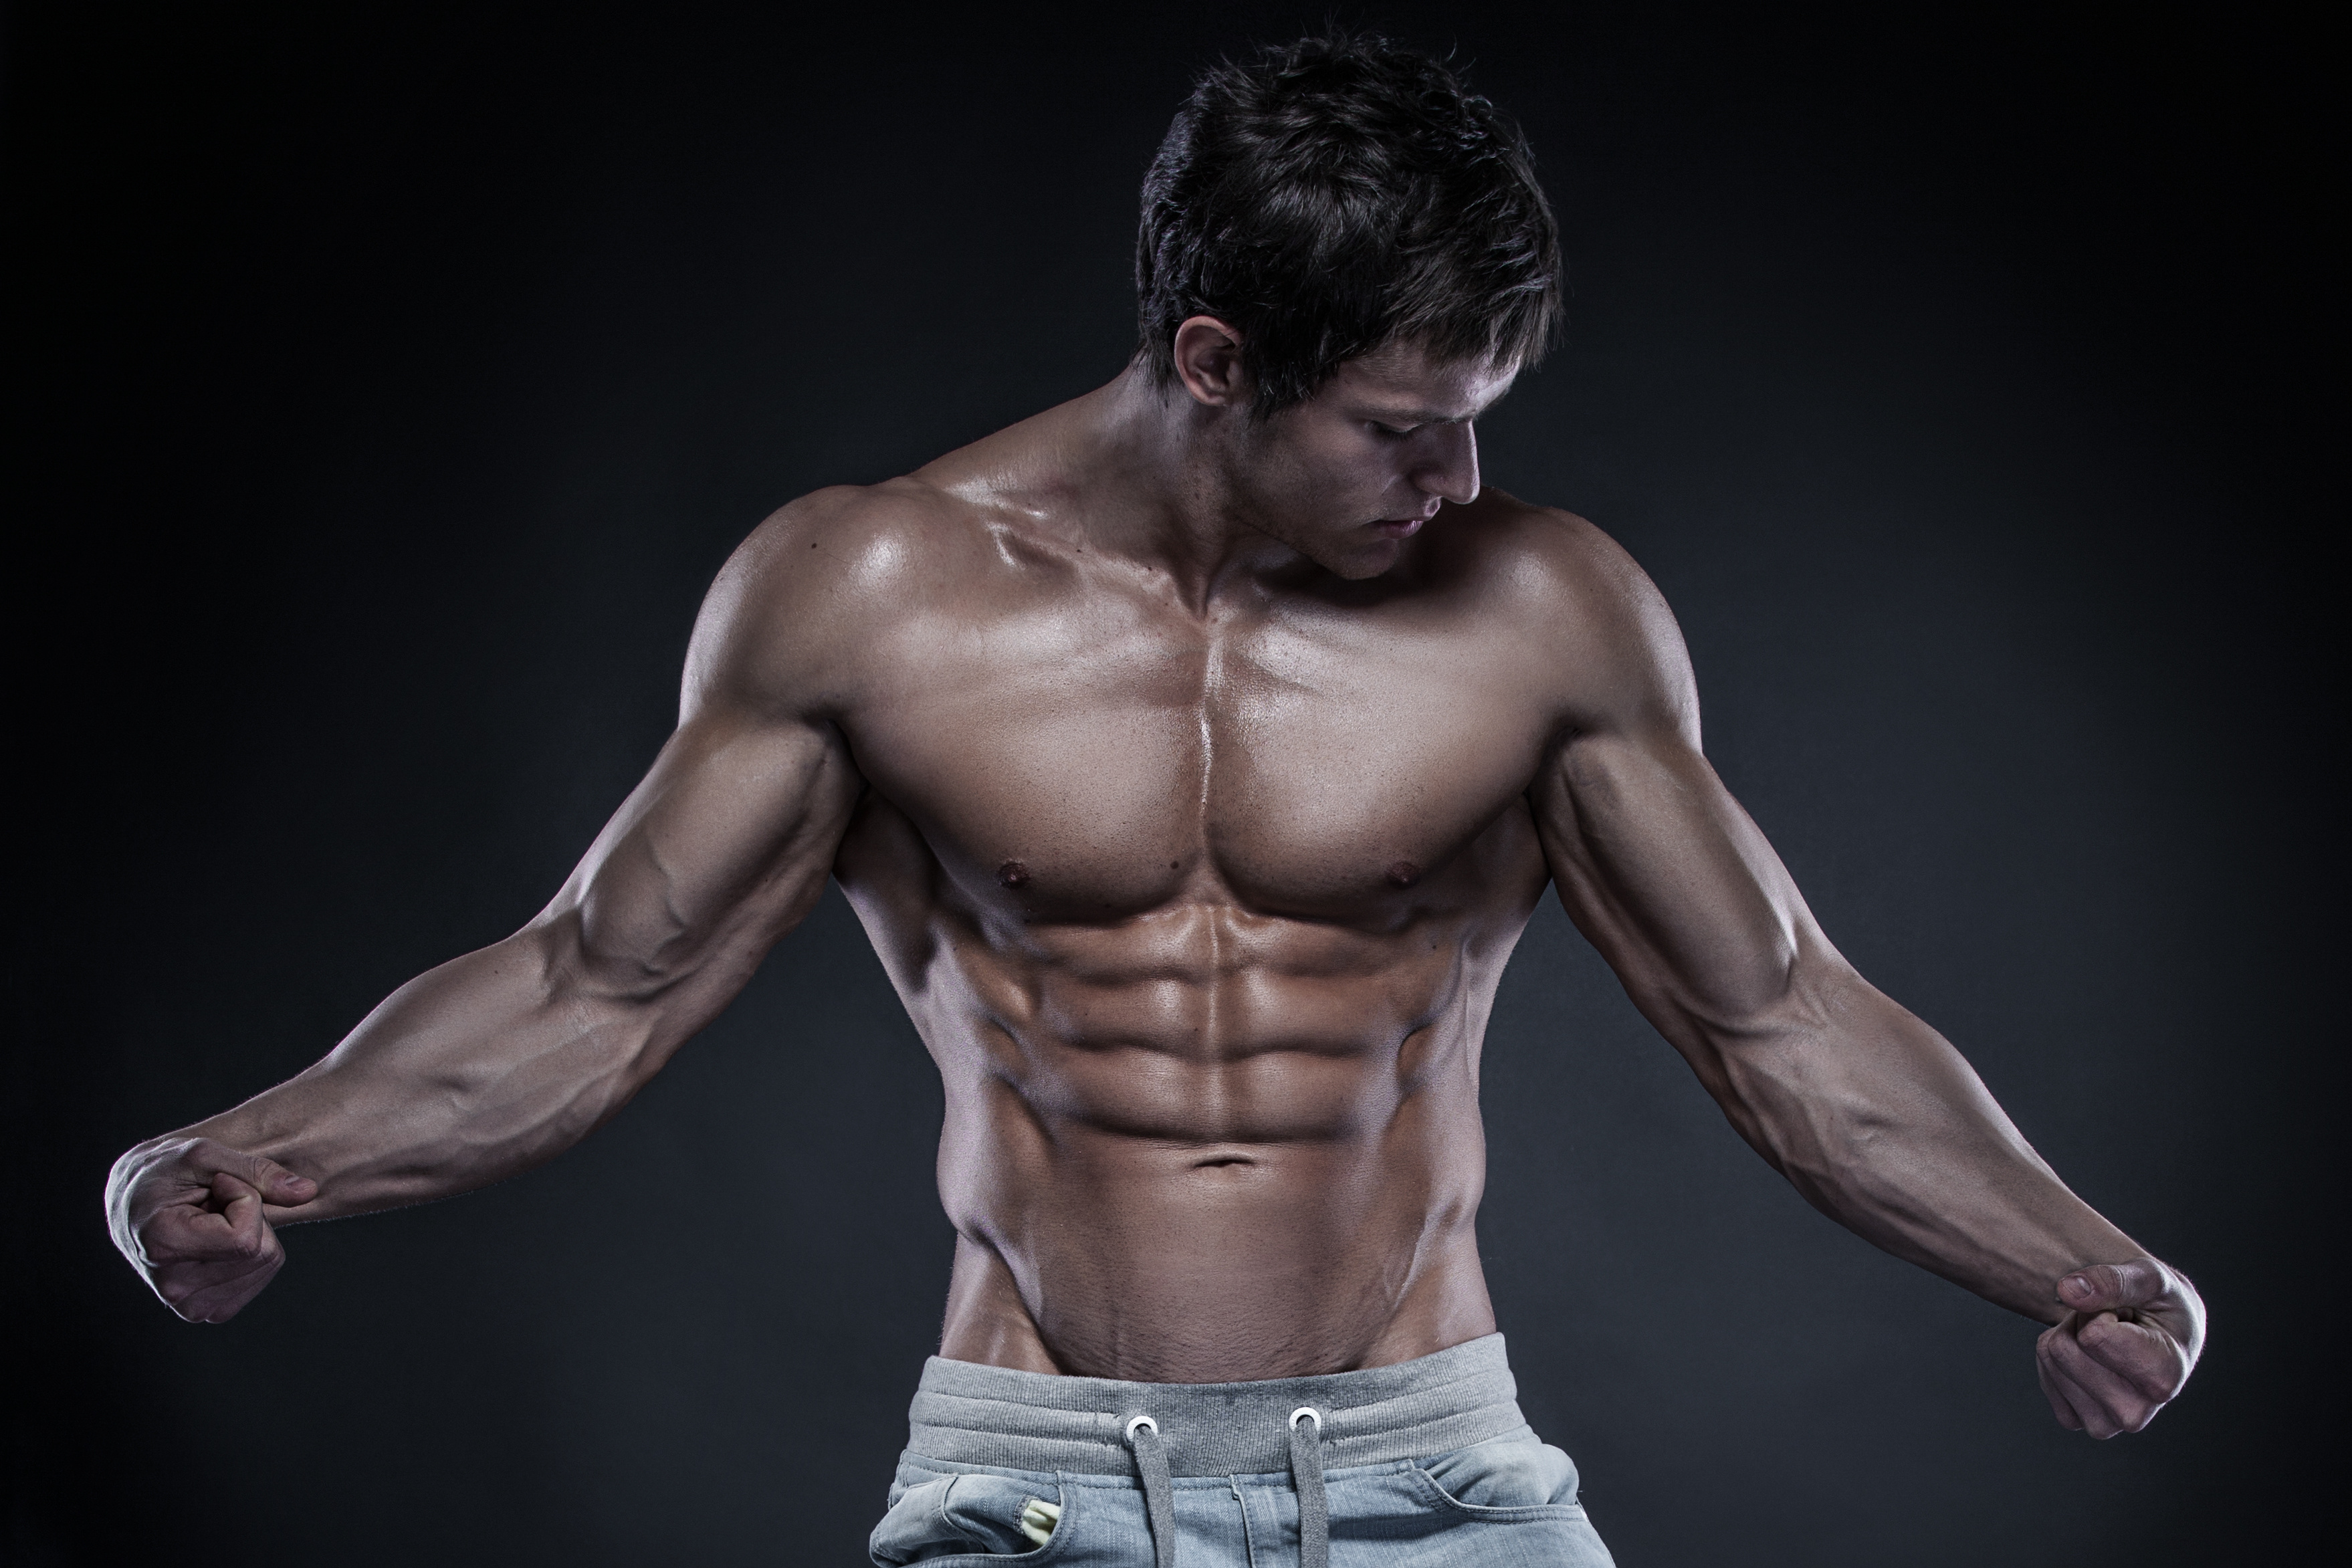 intermittent+fasting+for+muscle+gain.jpg